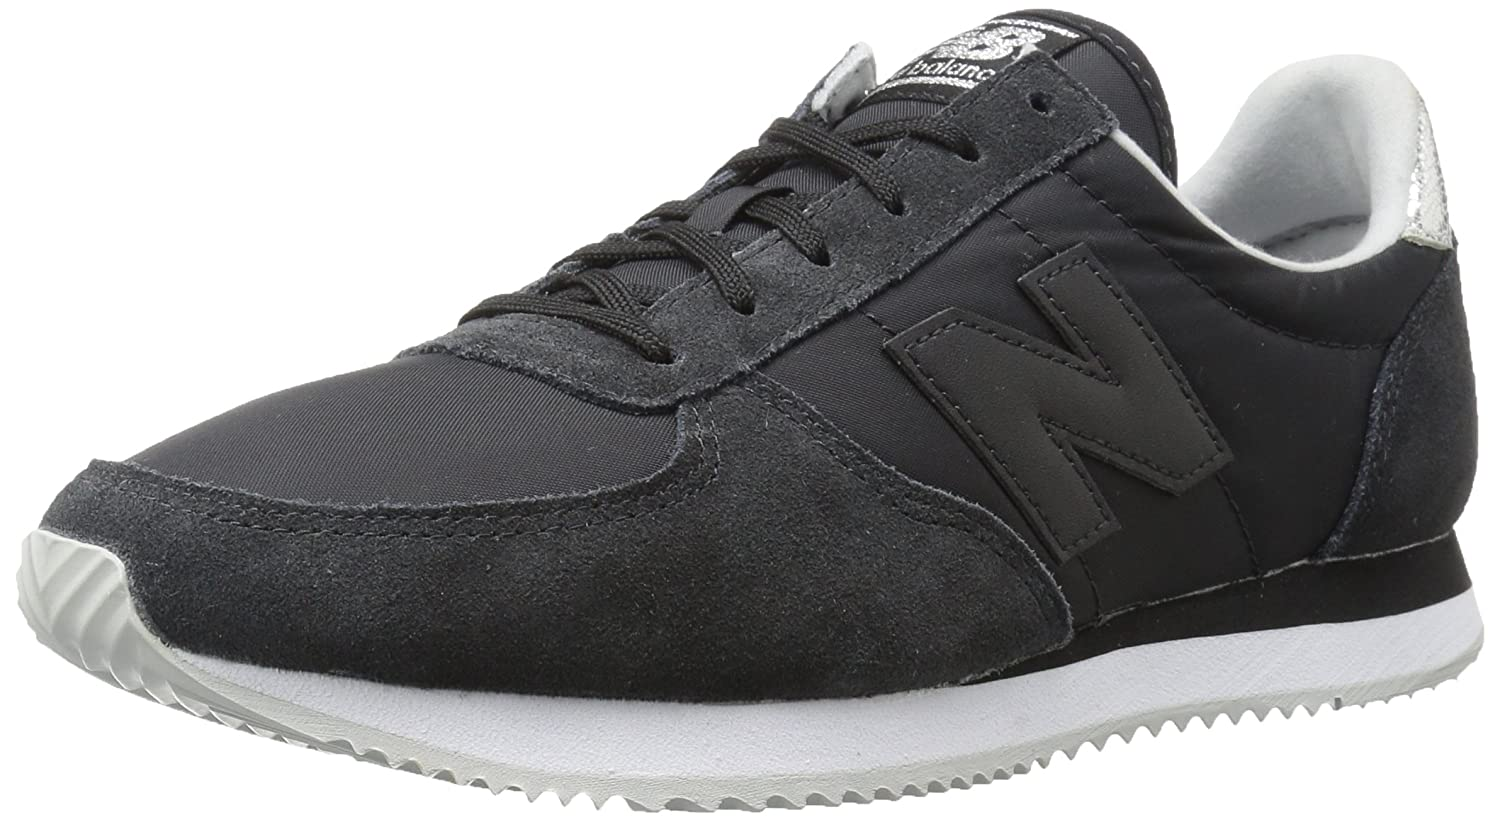 New Balance Women's 220v1 Sneaker B01N192LBD 10 D US|Black/Nimbus Cloud